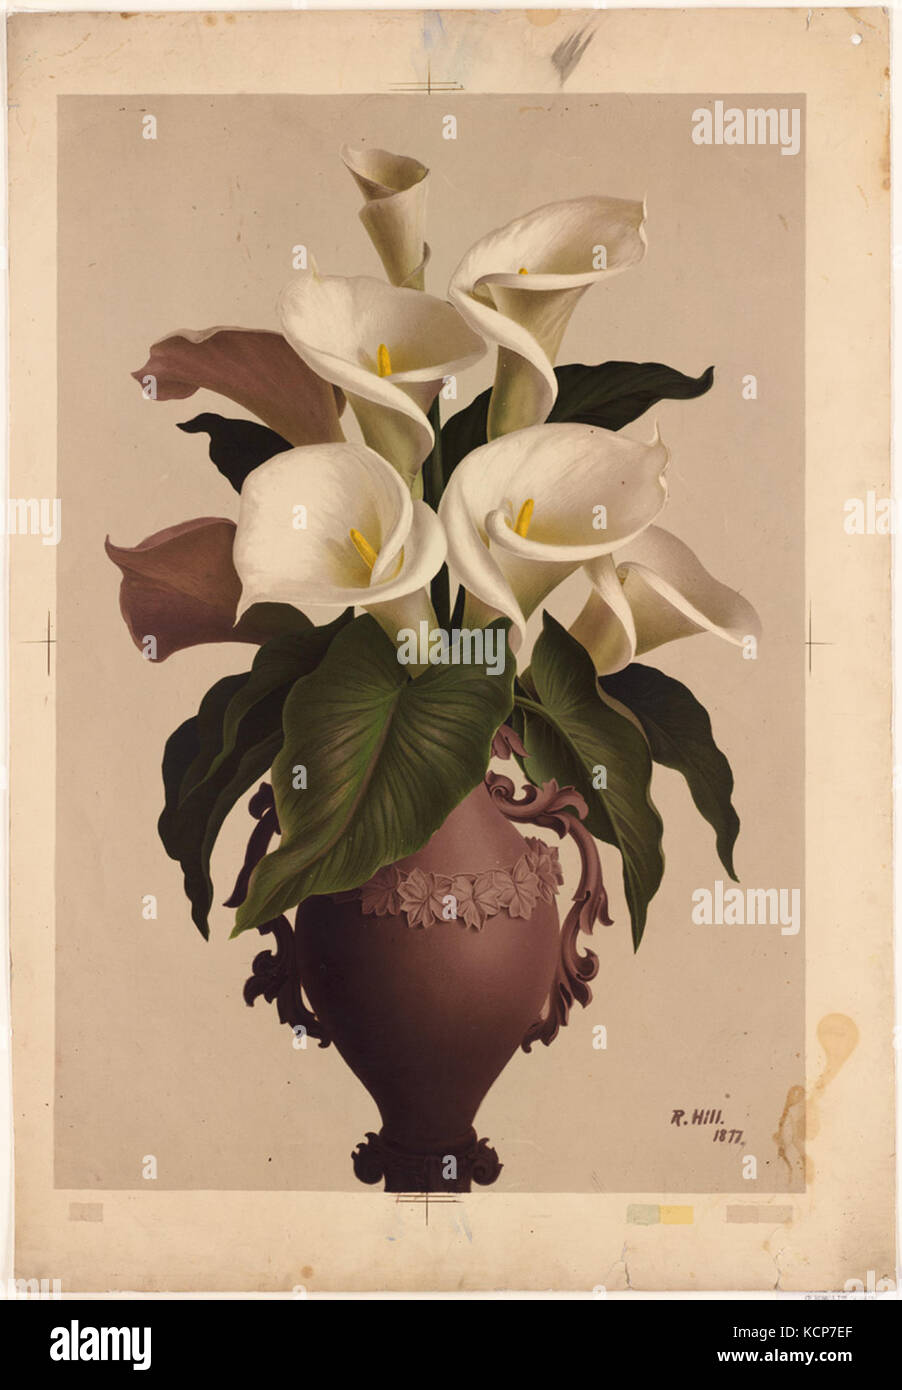 Calla lilies in vase stock photos calla lilies in vase stock calla lilies in vase by boston public library stock image reviewsmspy